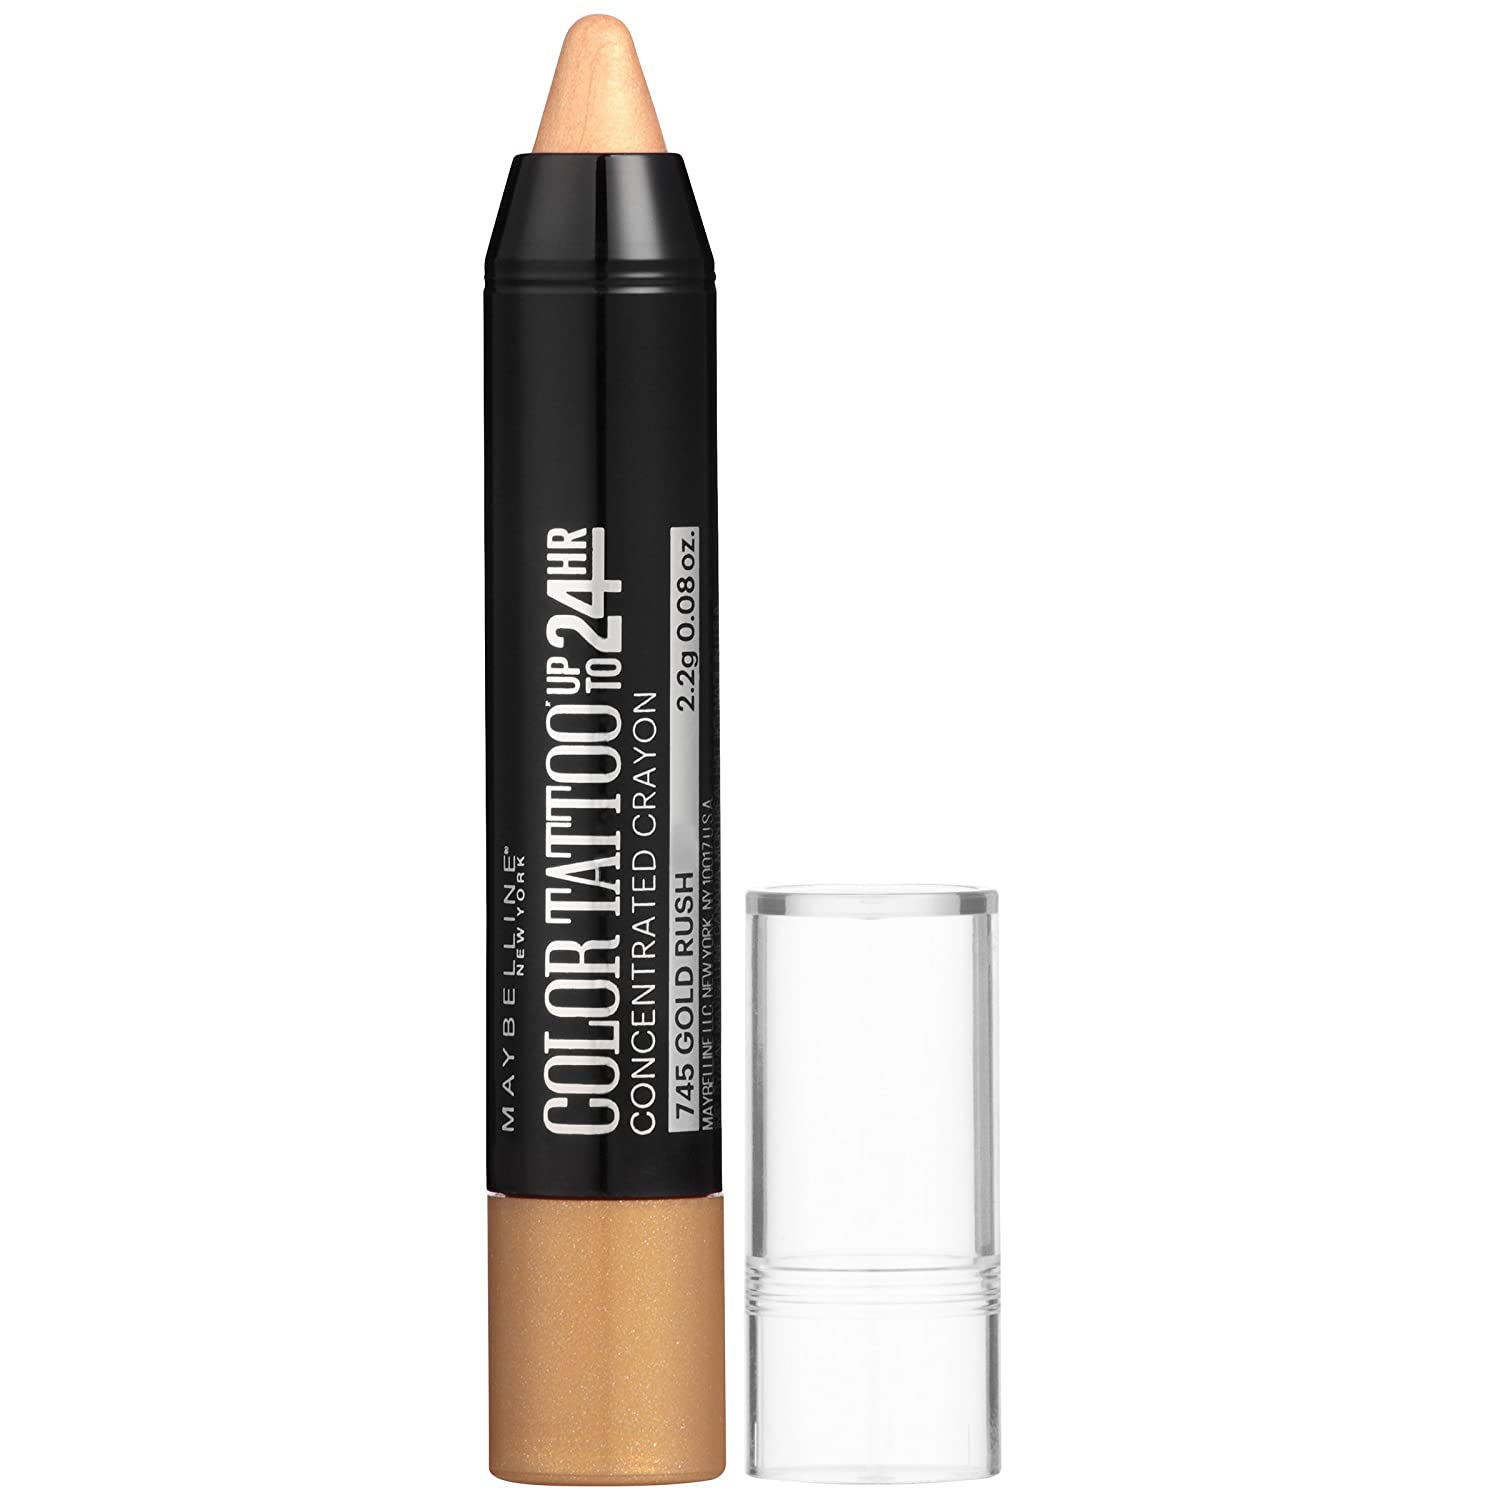 Maybelline New York Eyestudio Color Tattoo Concentrated Crayon Eye Color, Gold Rush, 0.08 Ounce